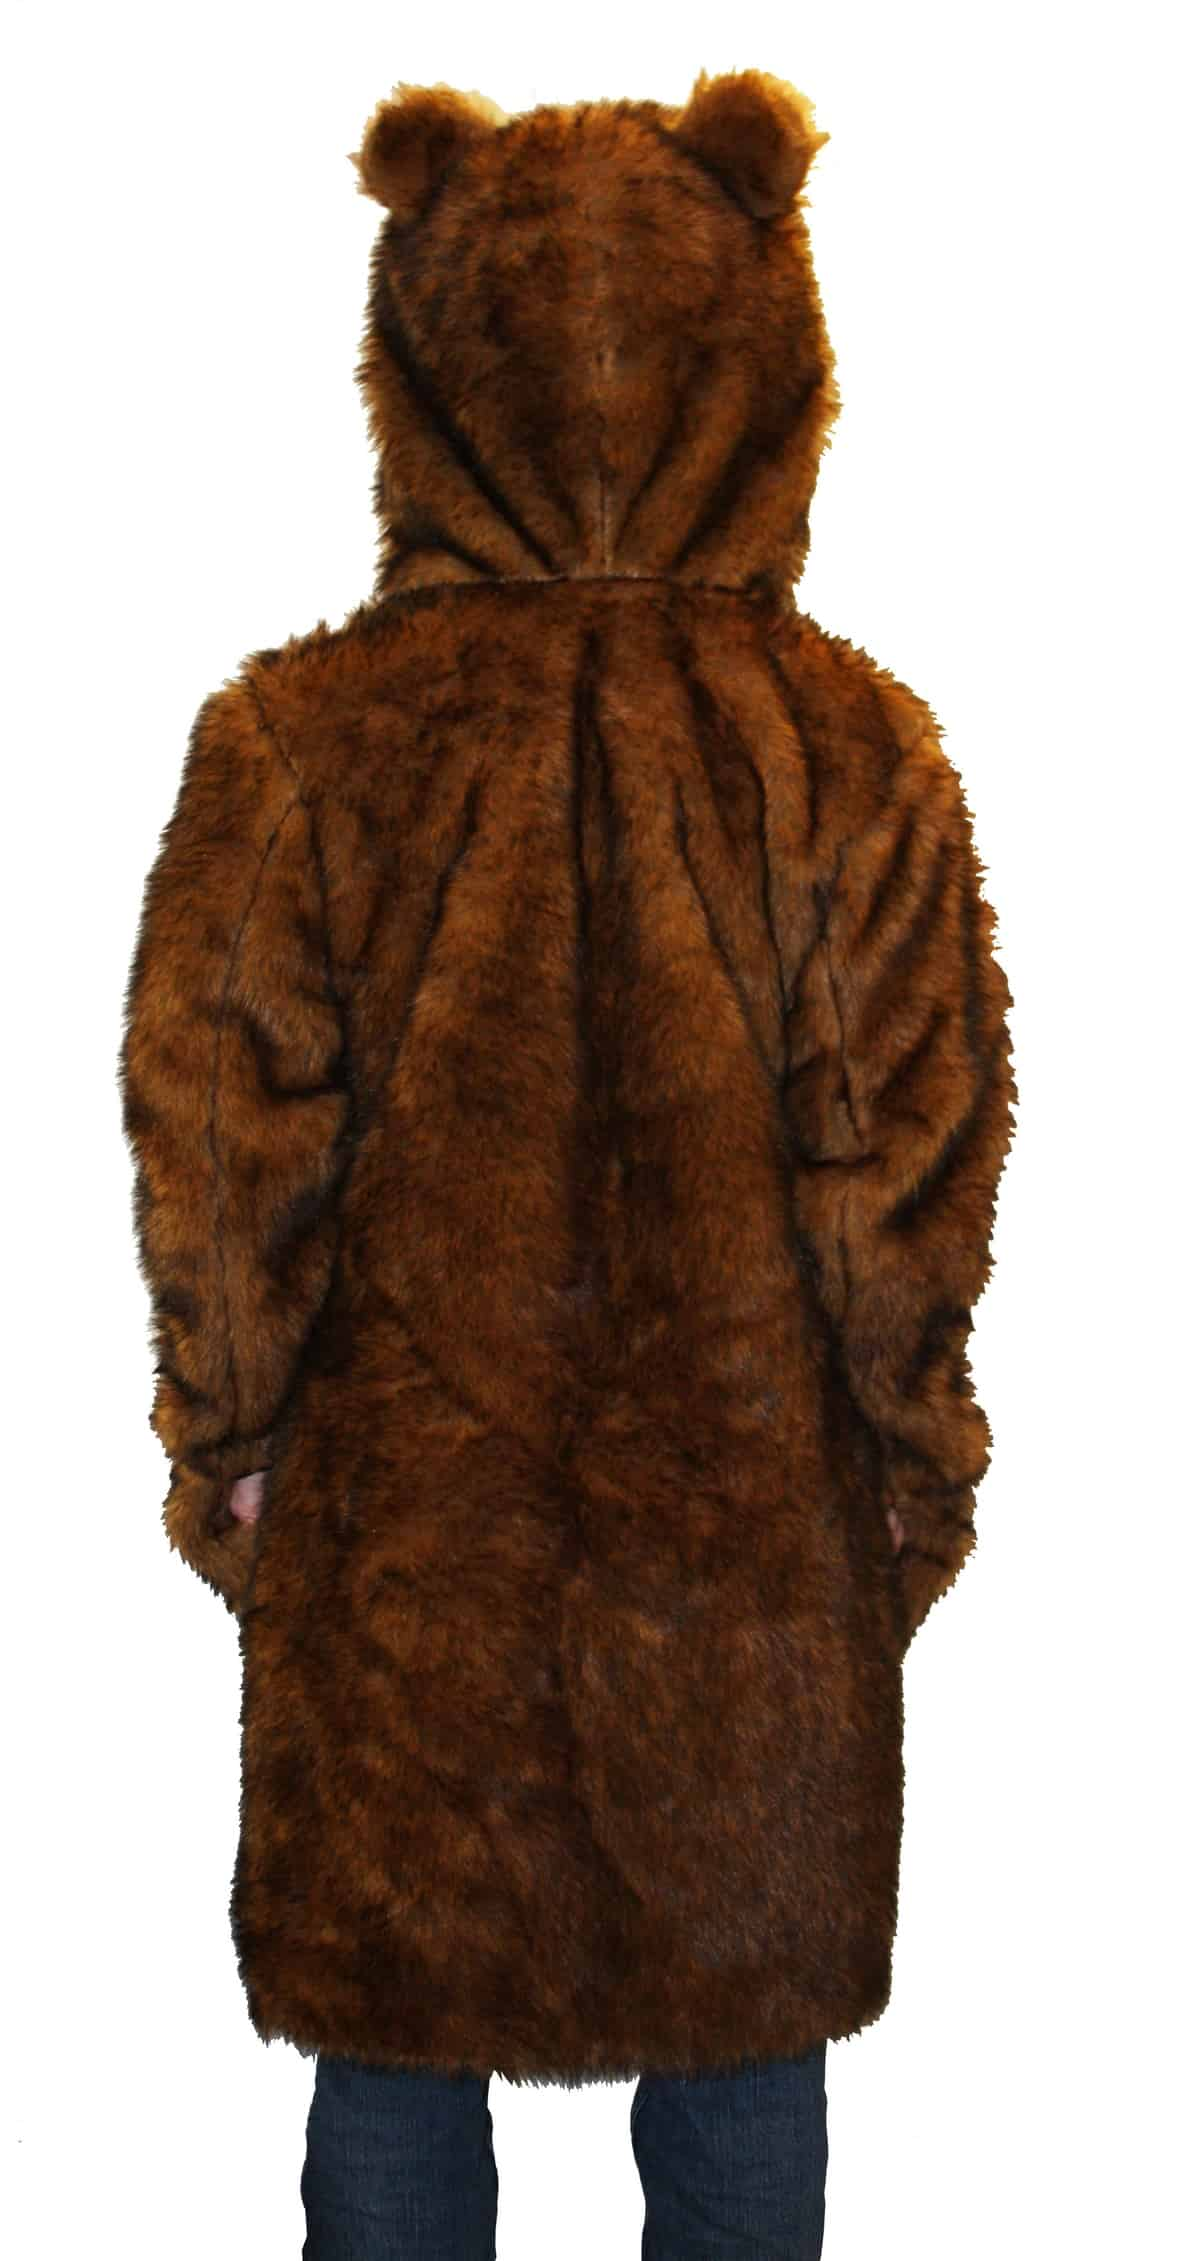 Workaholics Official Bear Coat Unique Costume